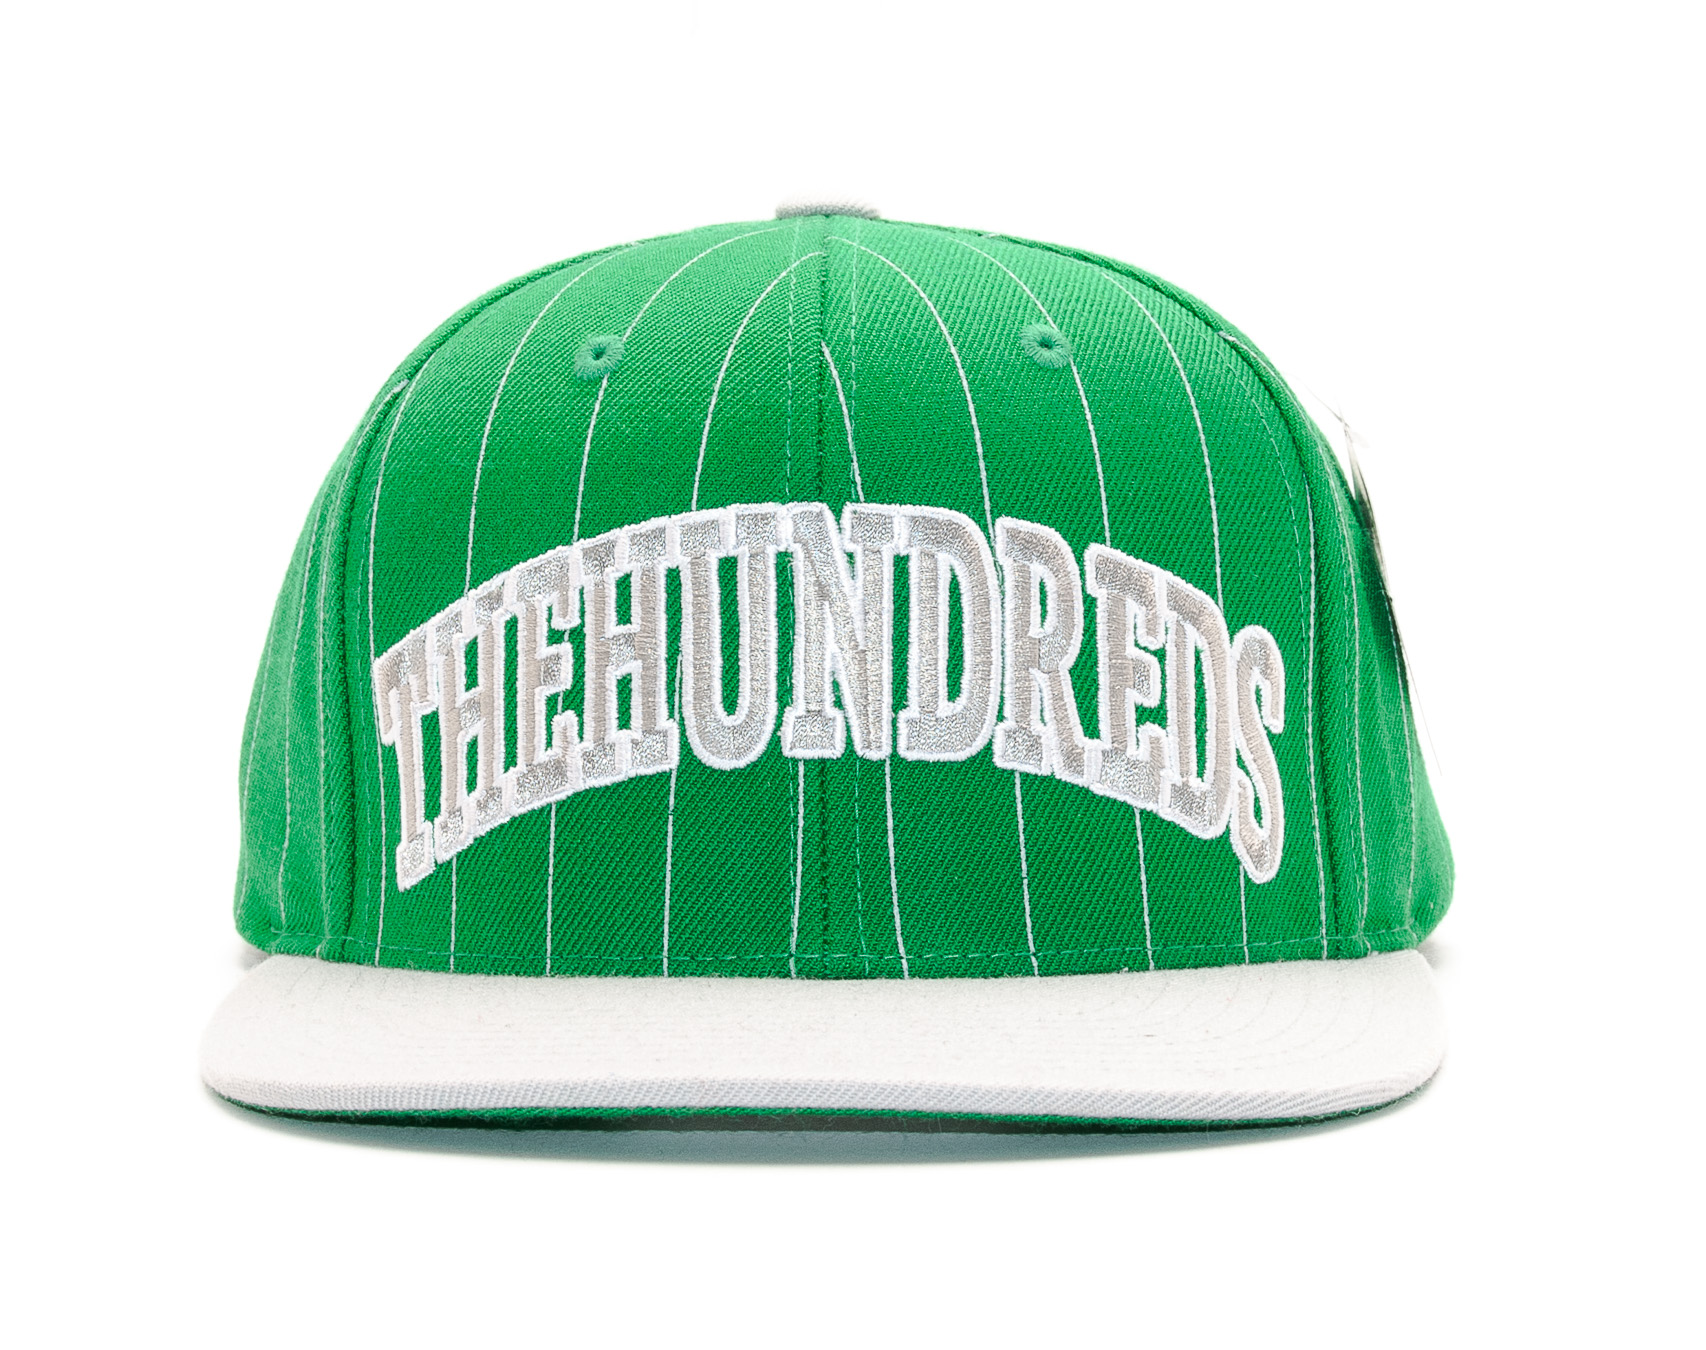 Kšiltovka The Hundreds Pins Green/Gray Snapback